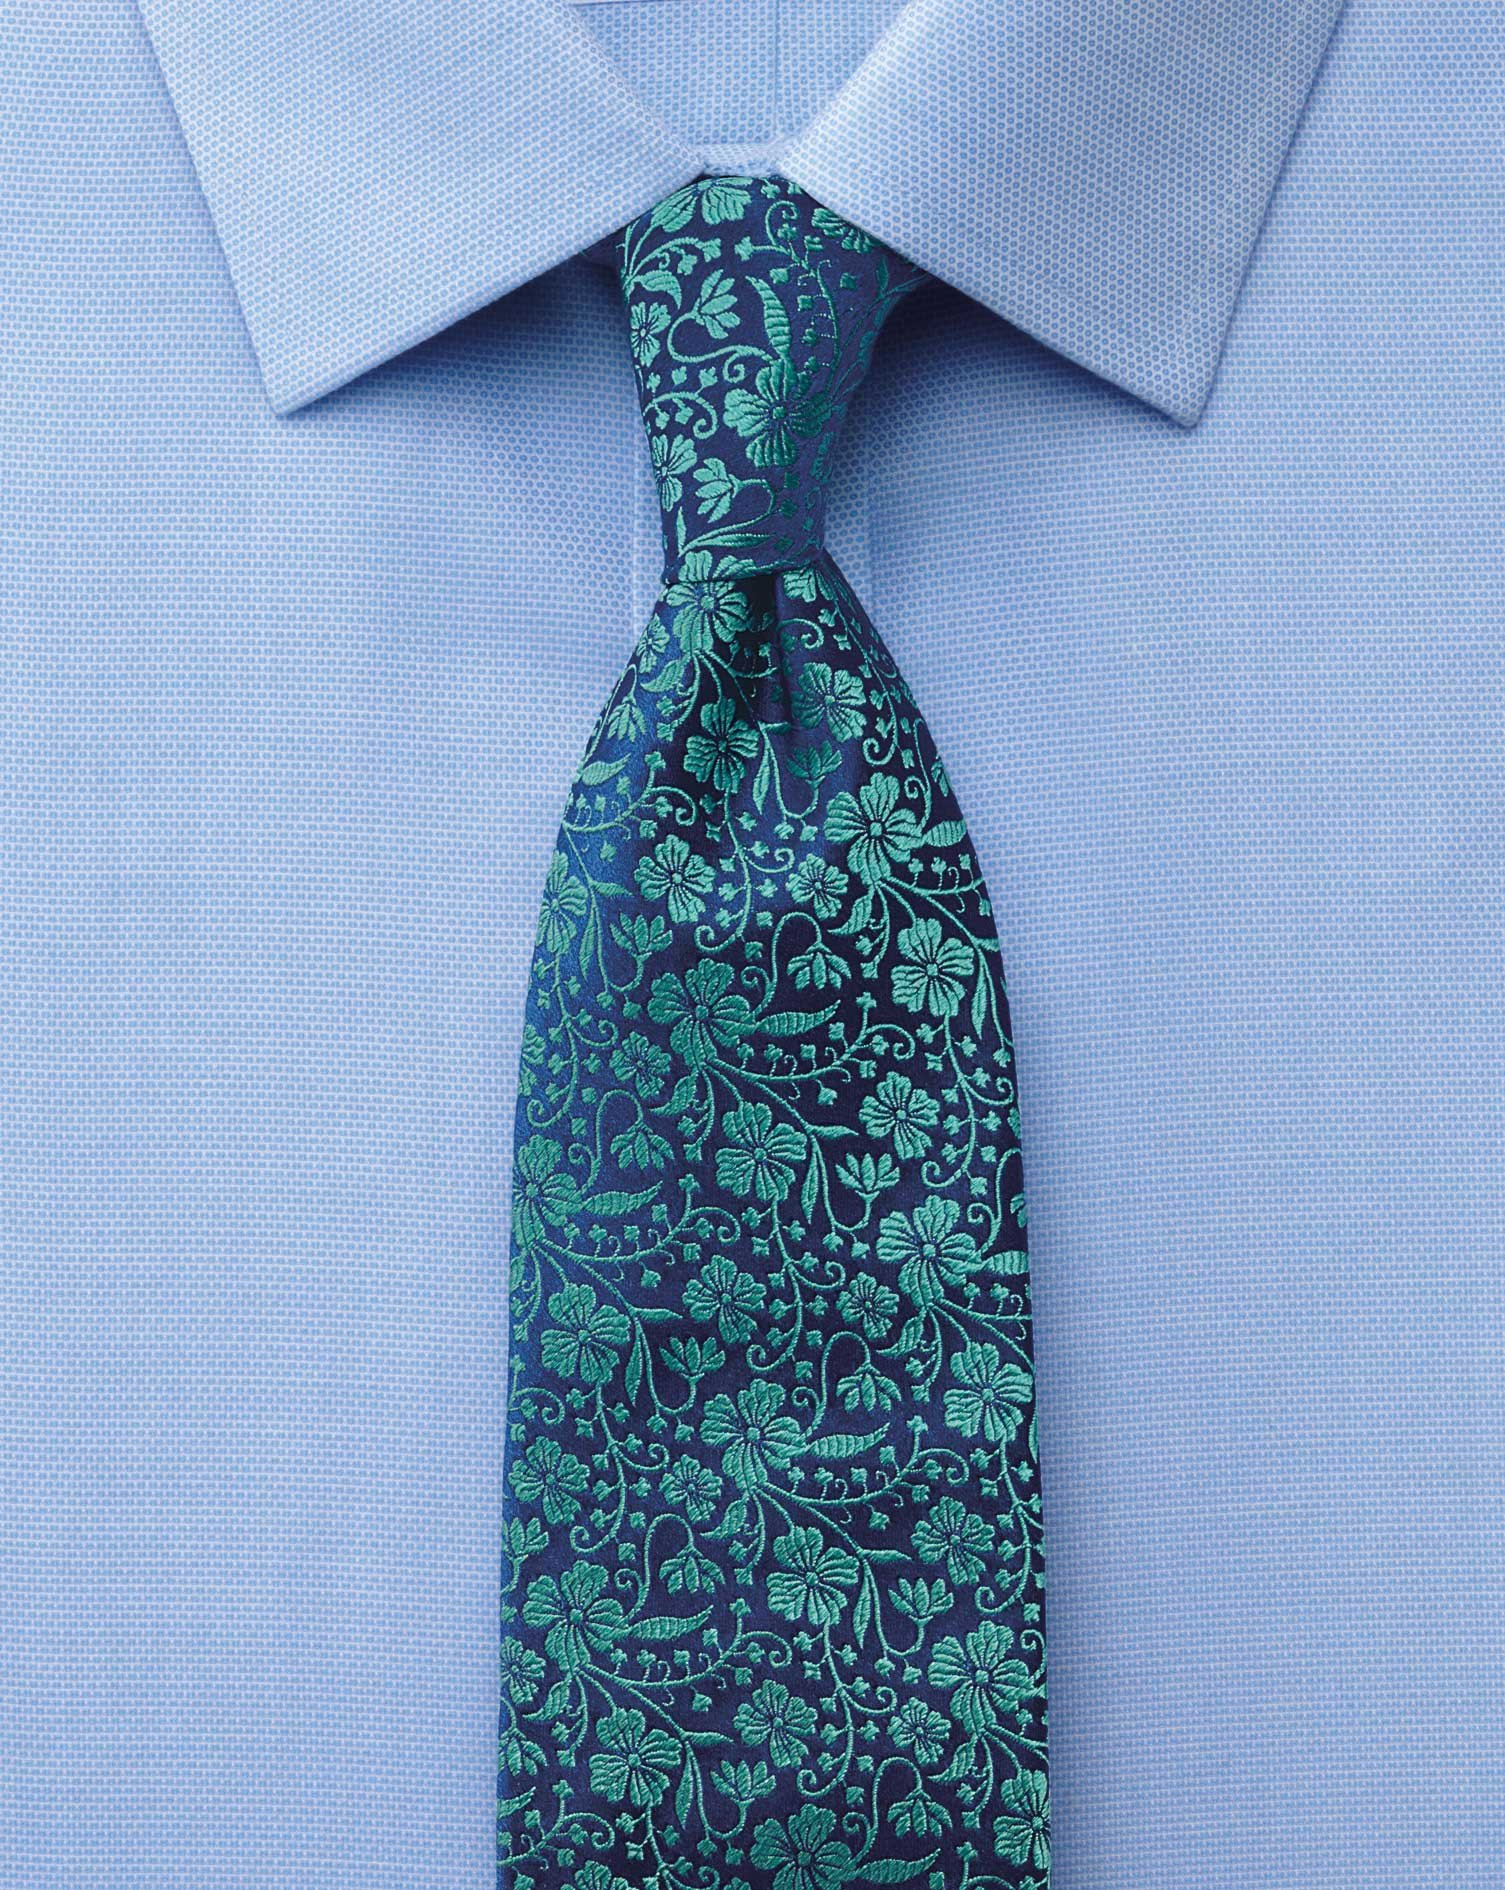 Charles Tyrwhitt Have You Used Yours Yet Milled